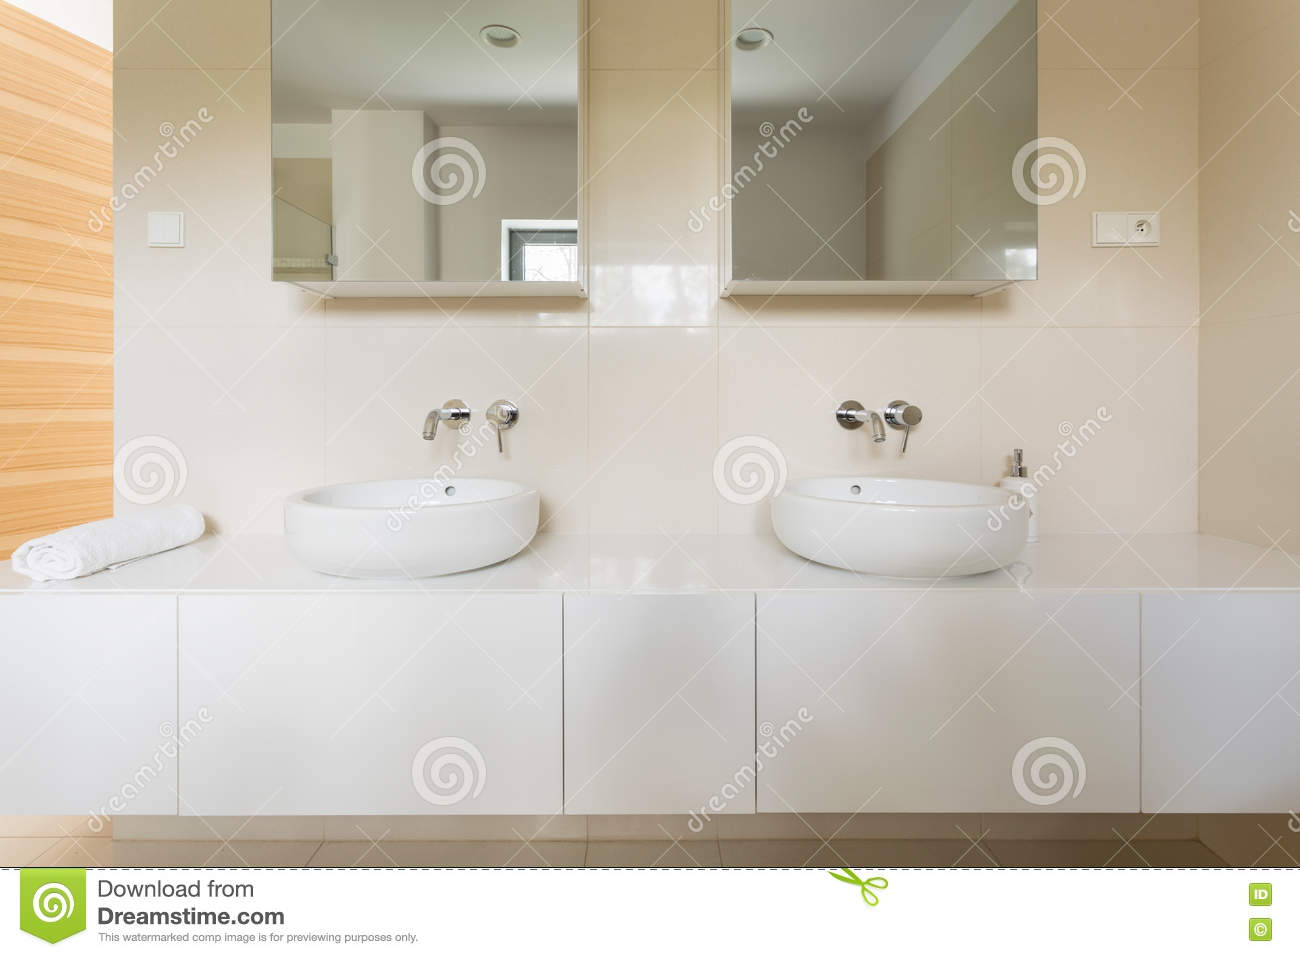 Bathroom designed for two stock image. Image of lifestyle - 78565109